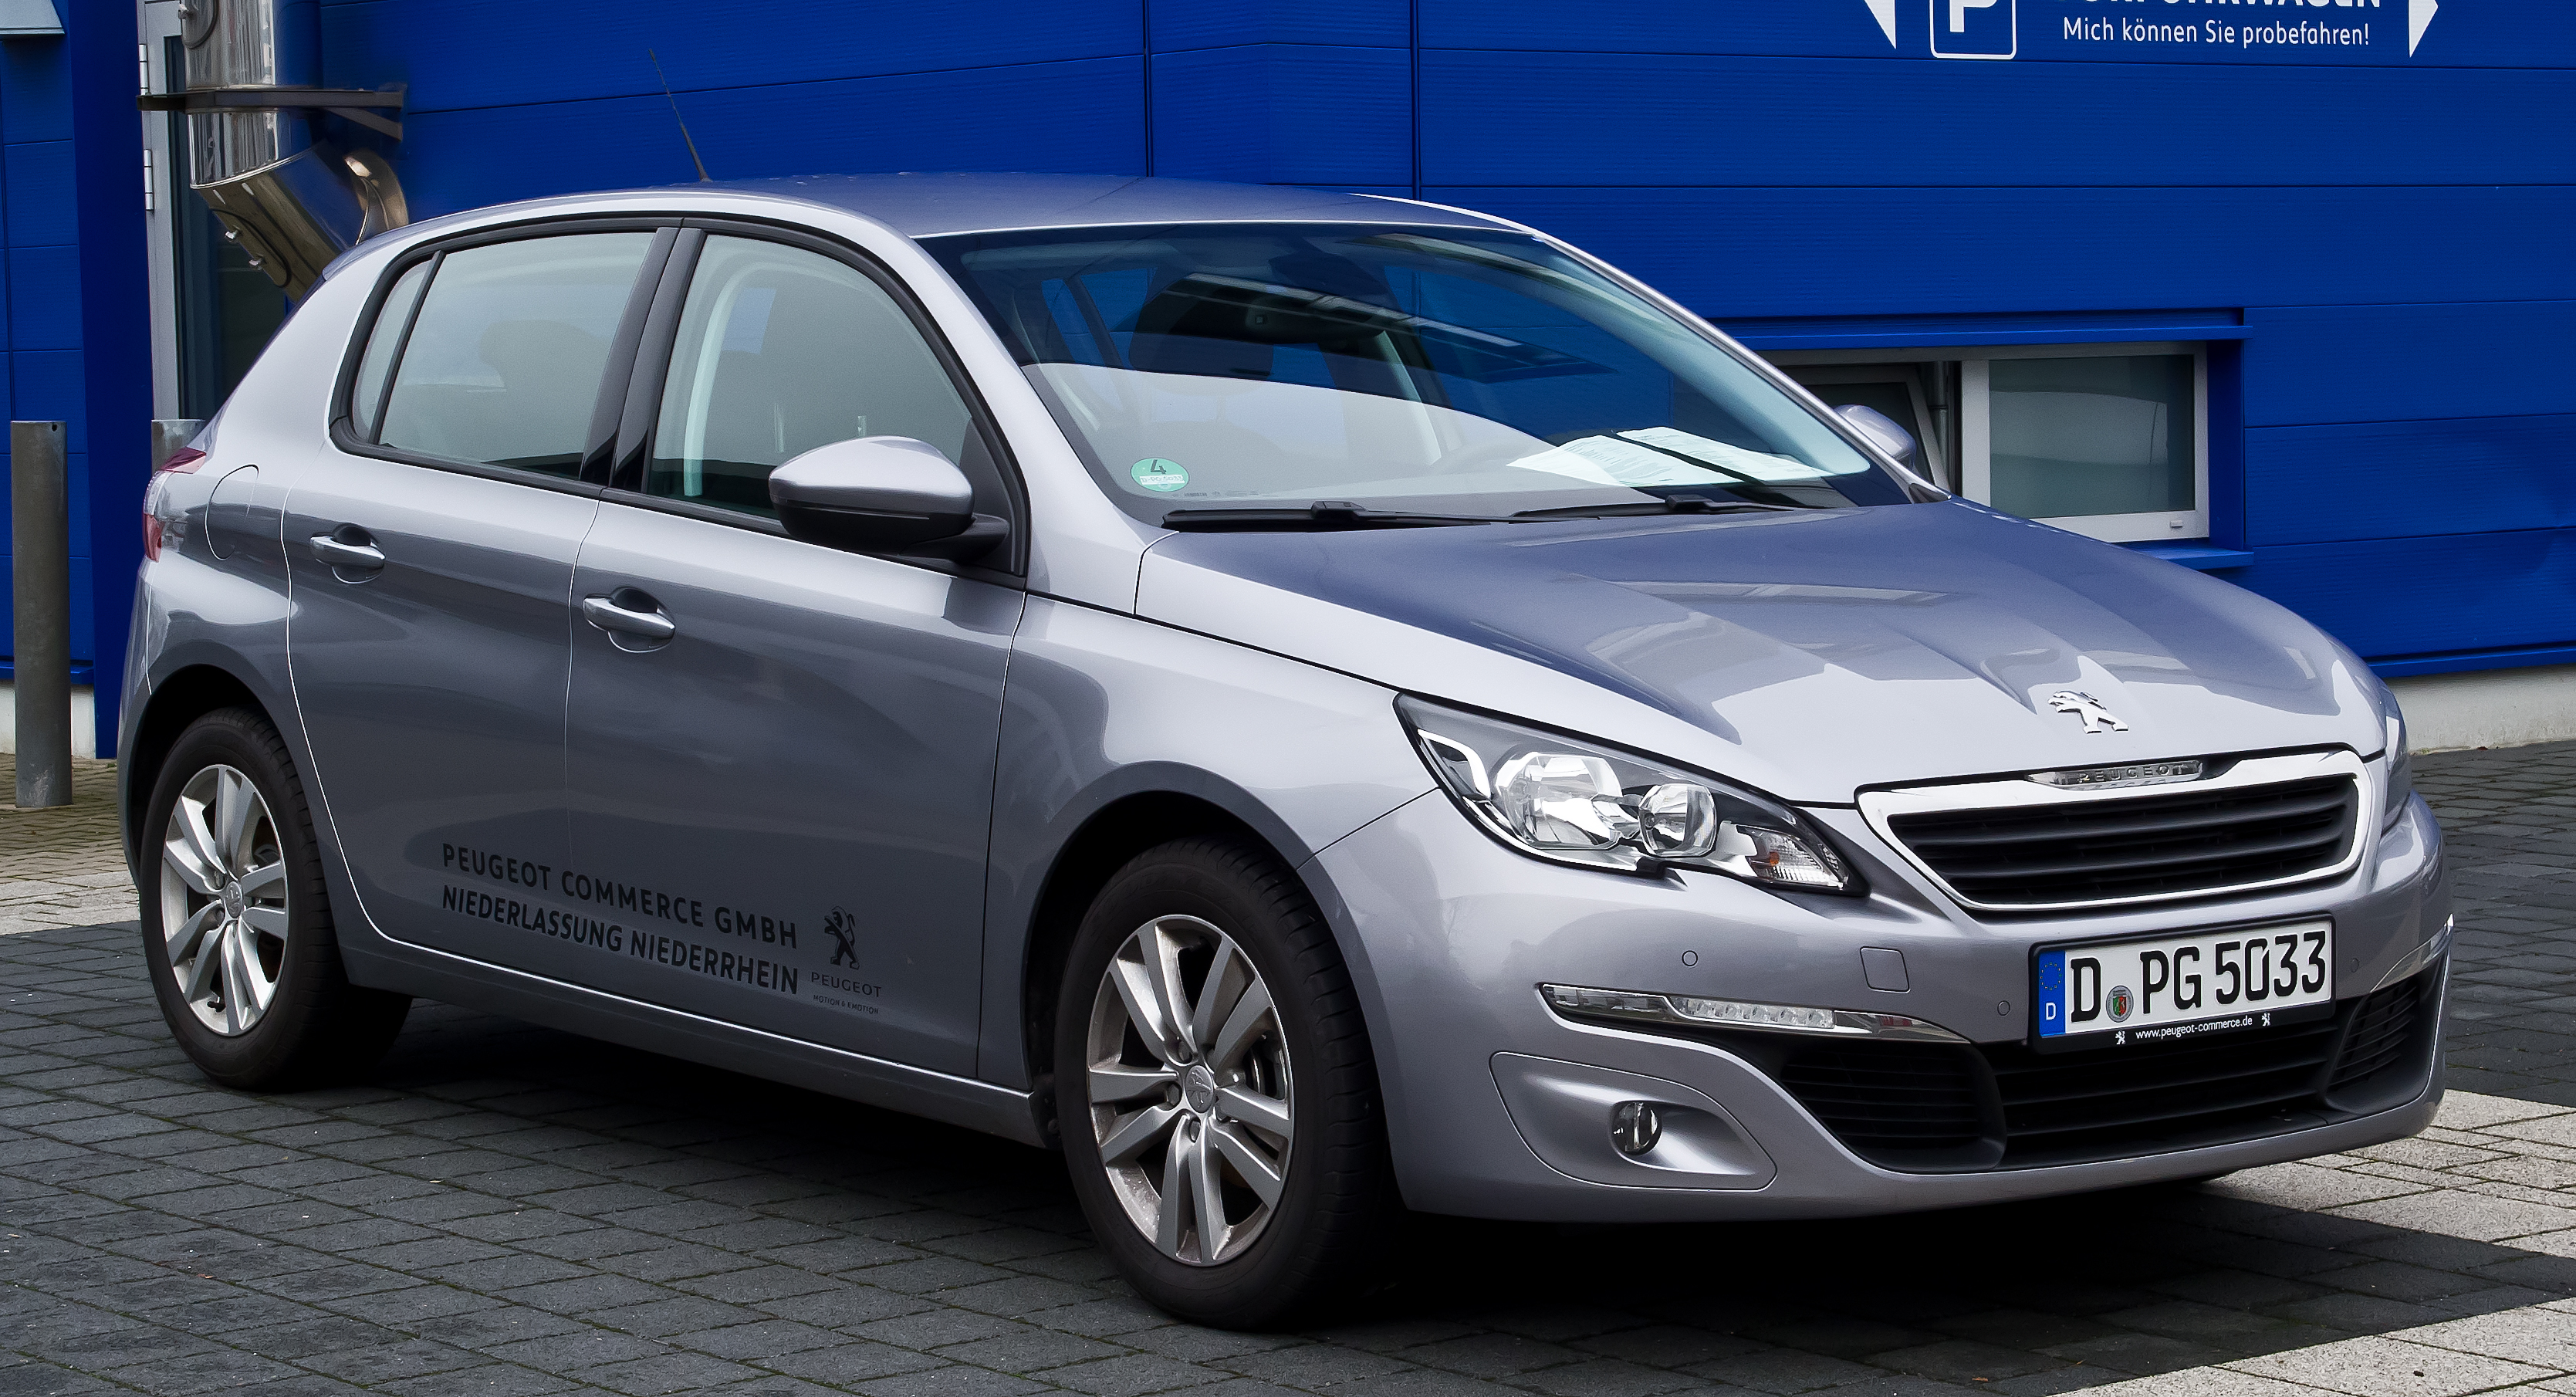 Peugeot 308, 2014 Car of the year in Europe